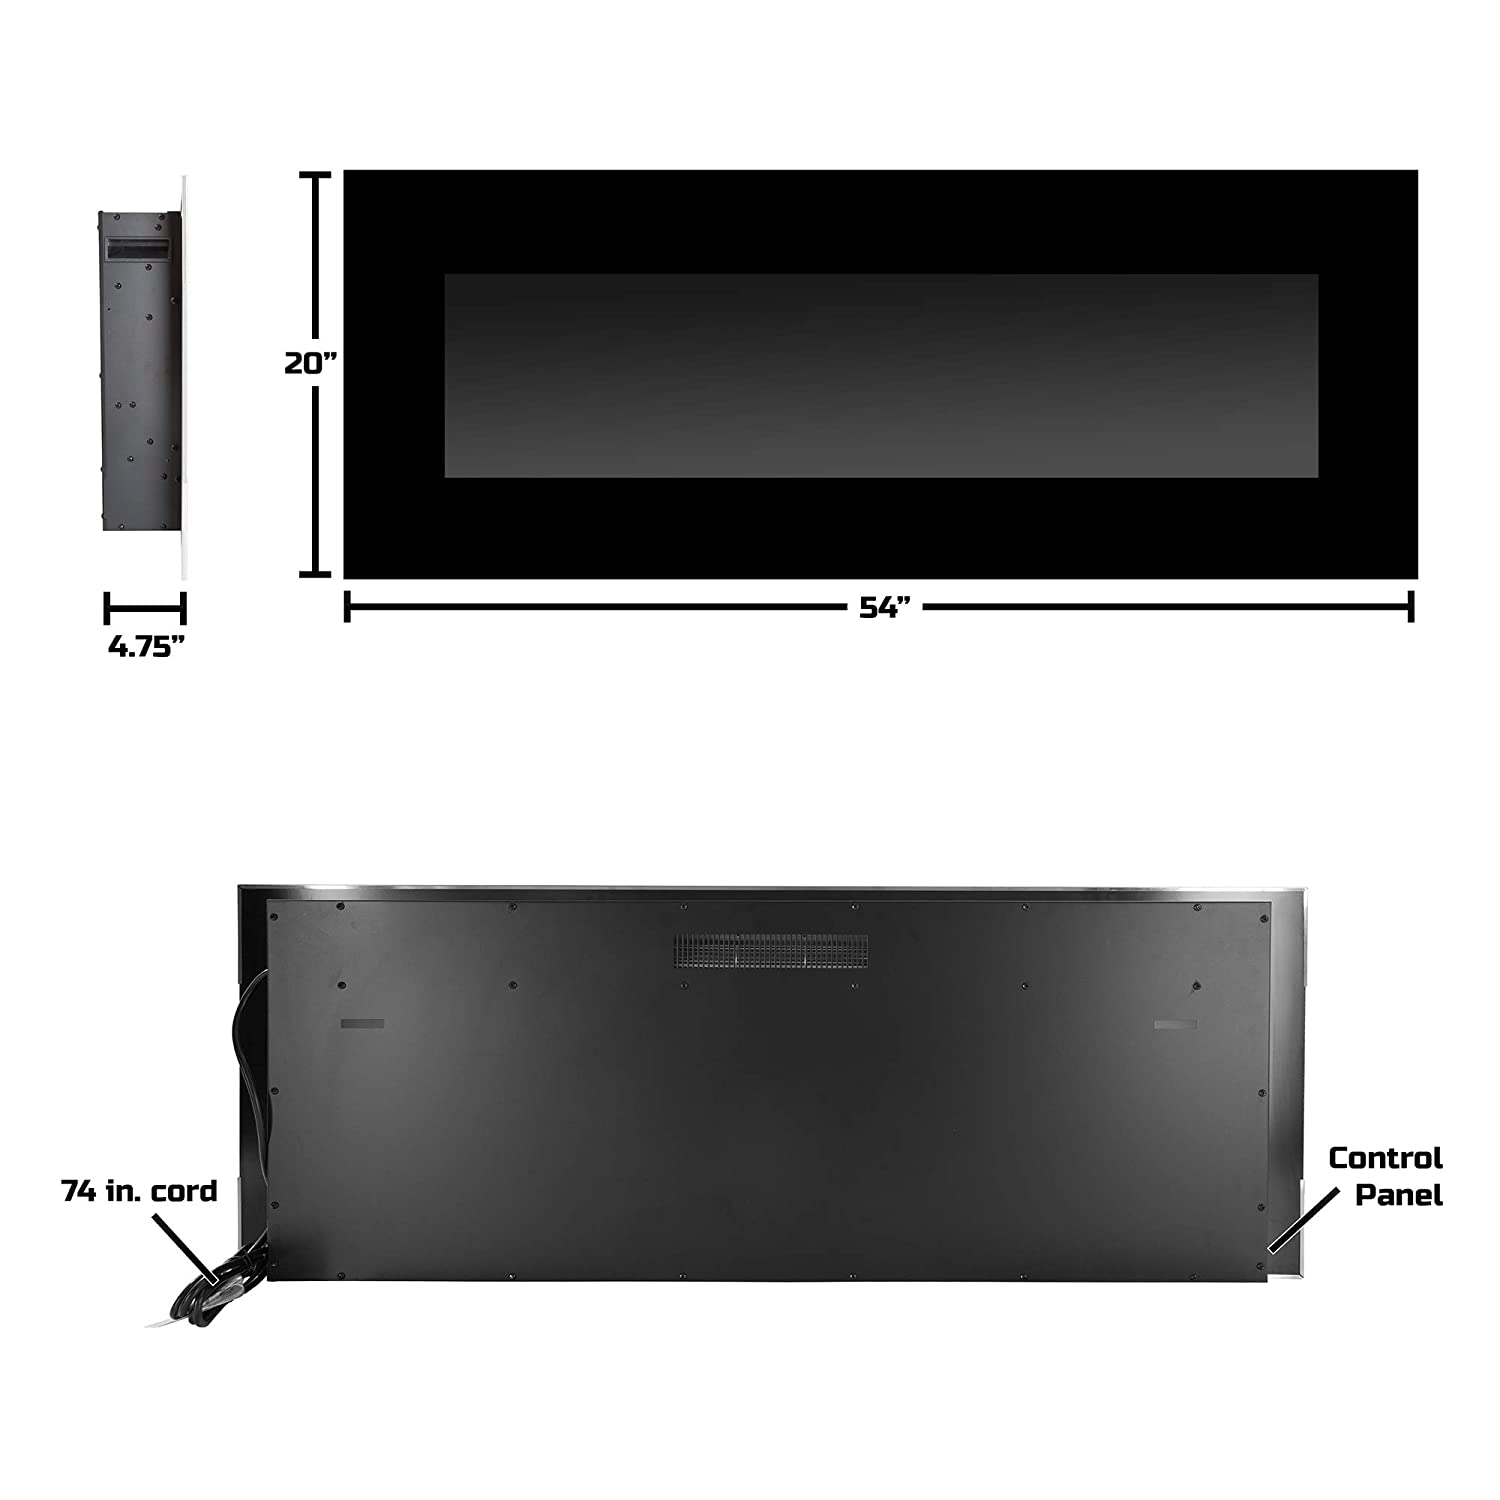 Pleasing Northwest Electric Fireplace Wall Mounted Color Changing Led Flame And Remote 50 Black Download Free Architecture Designs Intelgarnamadebymaigaardcom